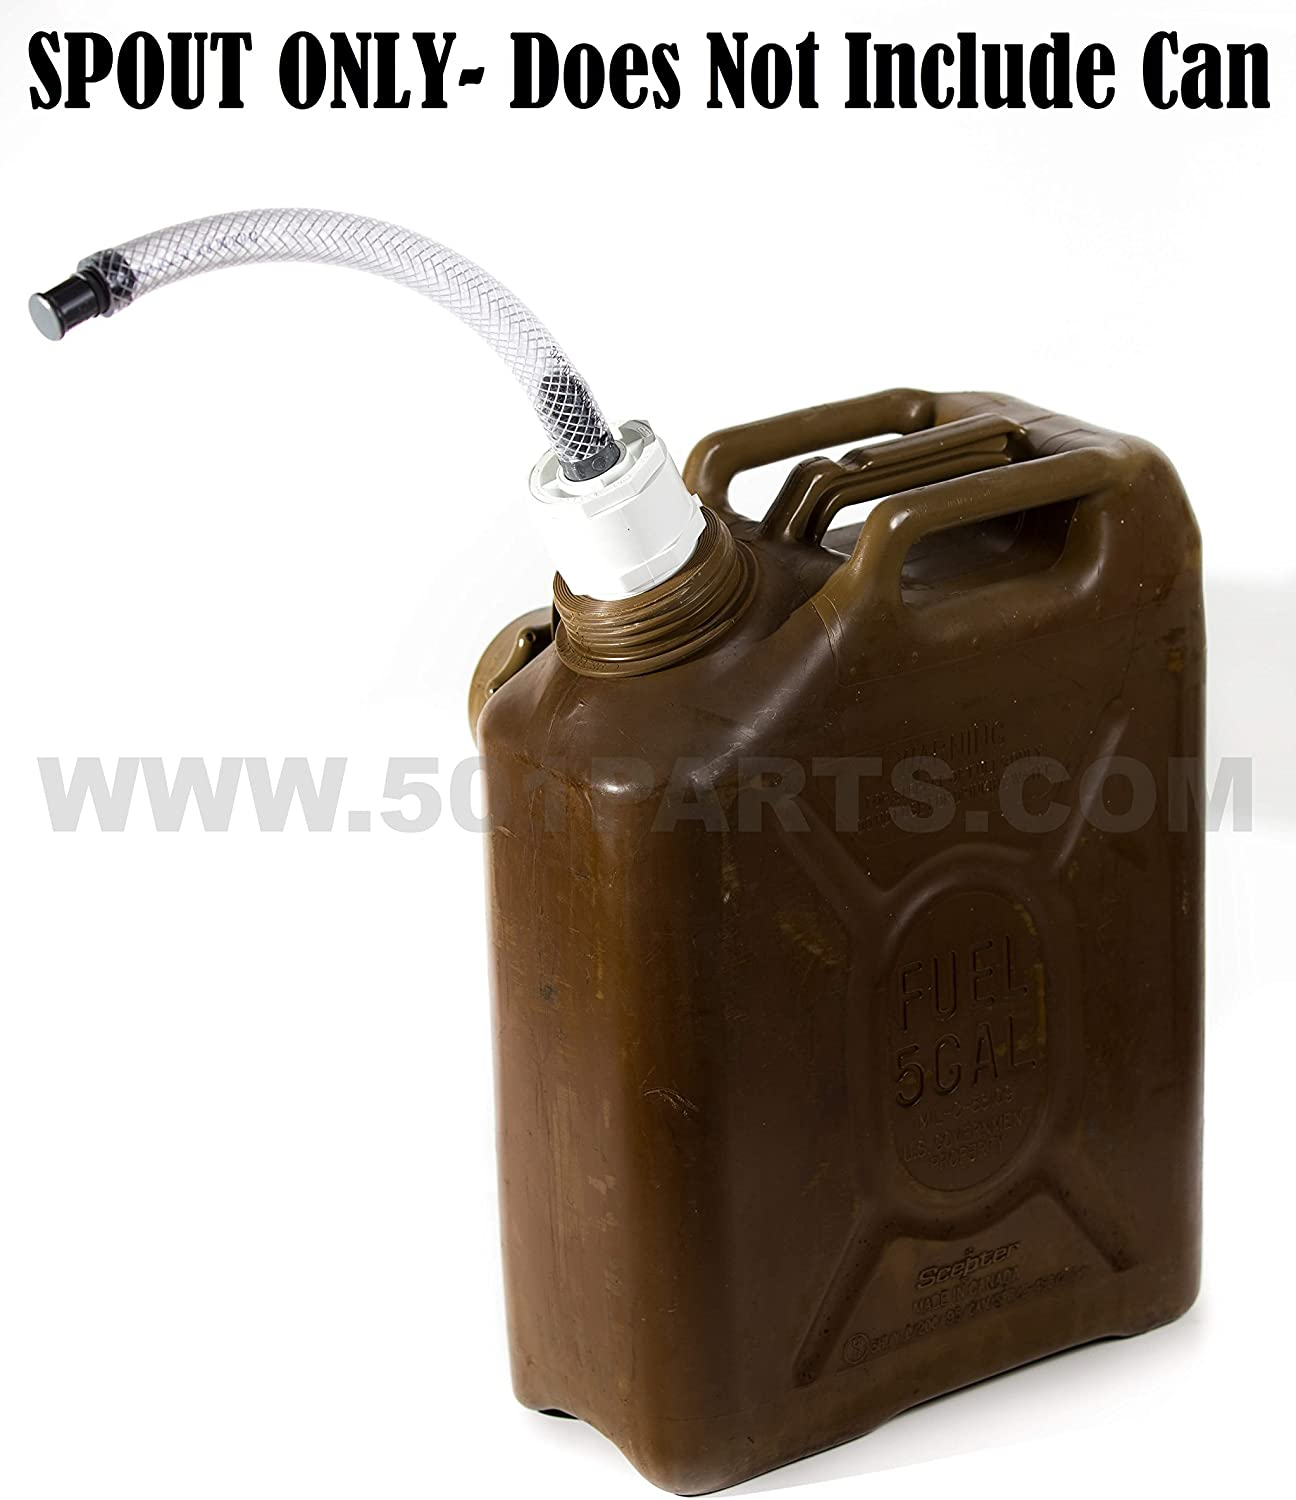 Scepter Military Fuel and Jerry Can Spout - 3/4 Inch Diameter Hose with Filter- Fuels Gasoline Cars, Trucks, Equipment